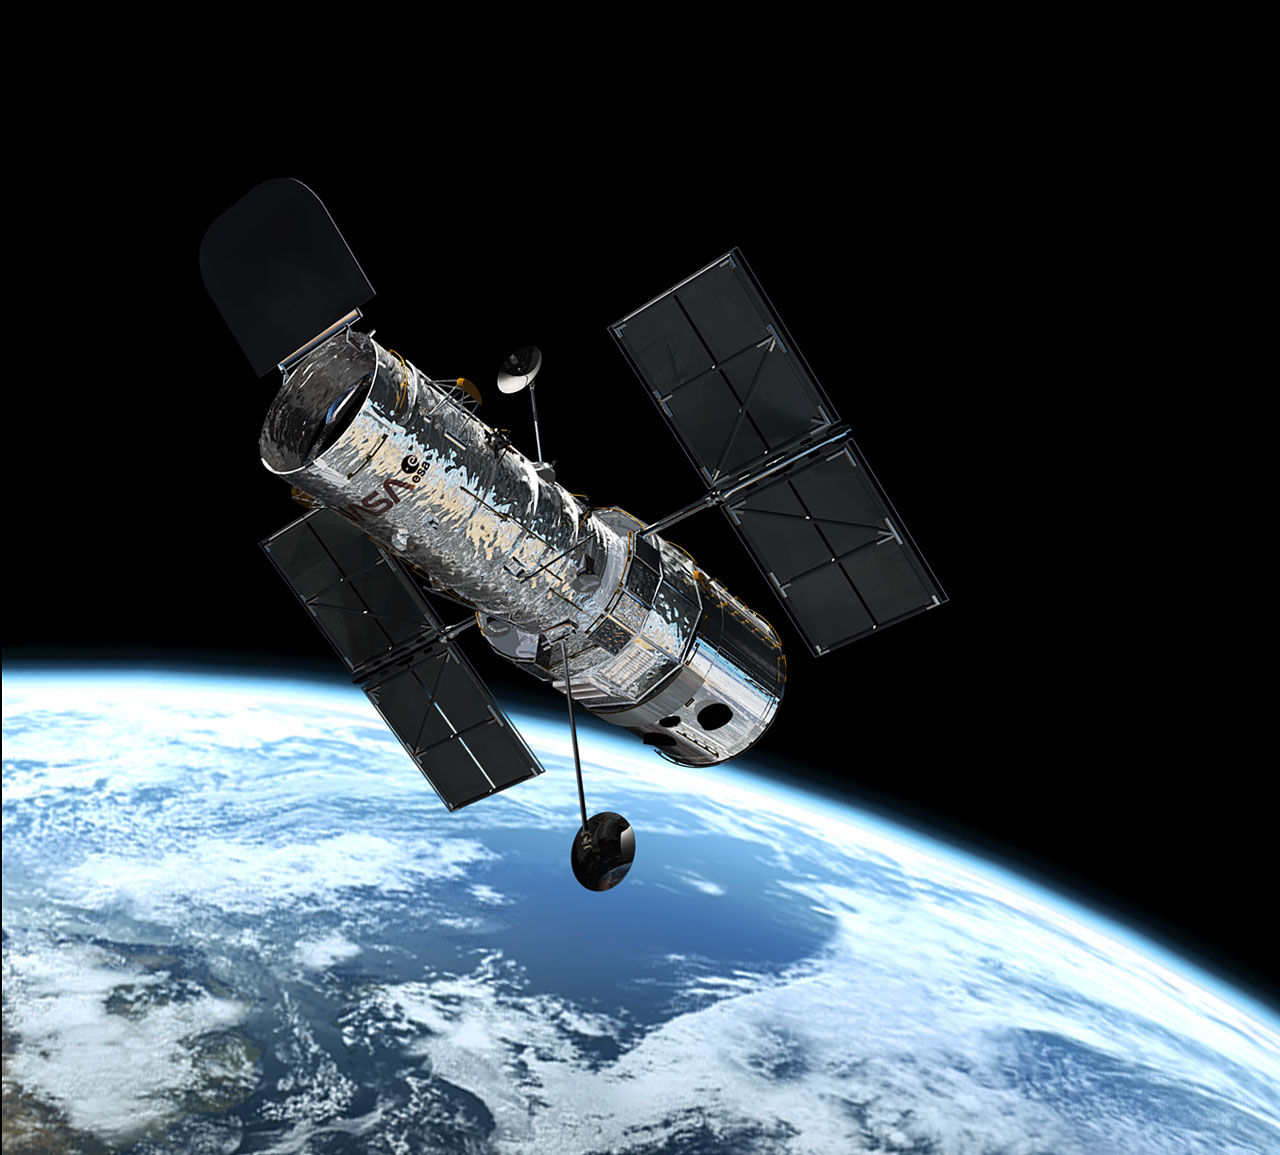 Hubble Telescope Images of Space The Hubble Space Telescope in